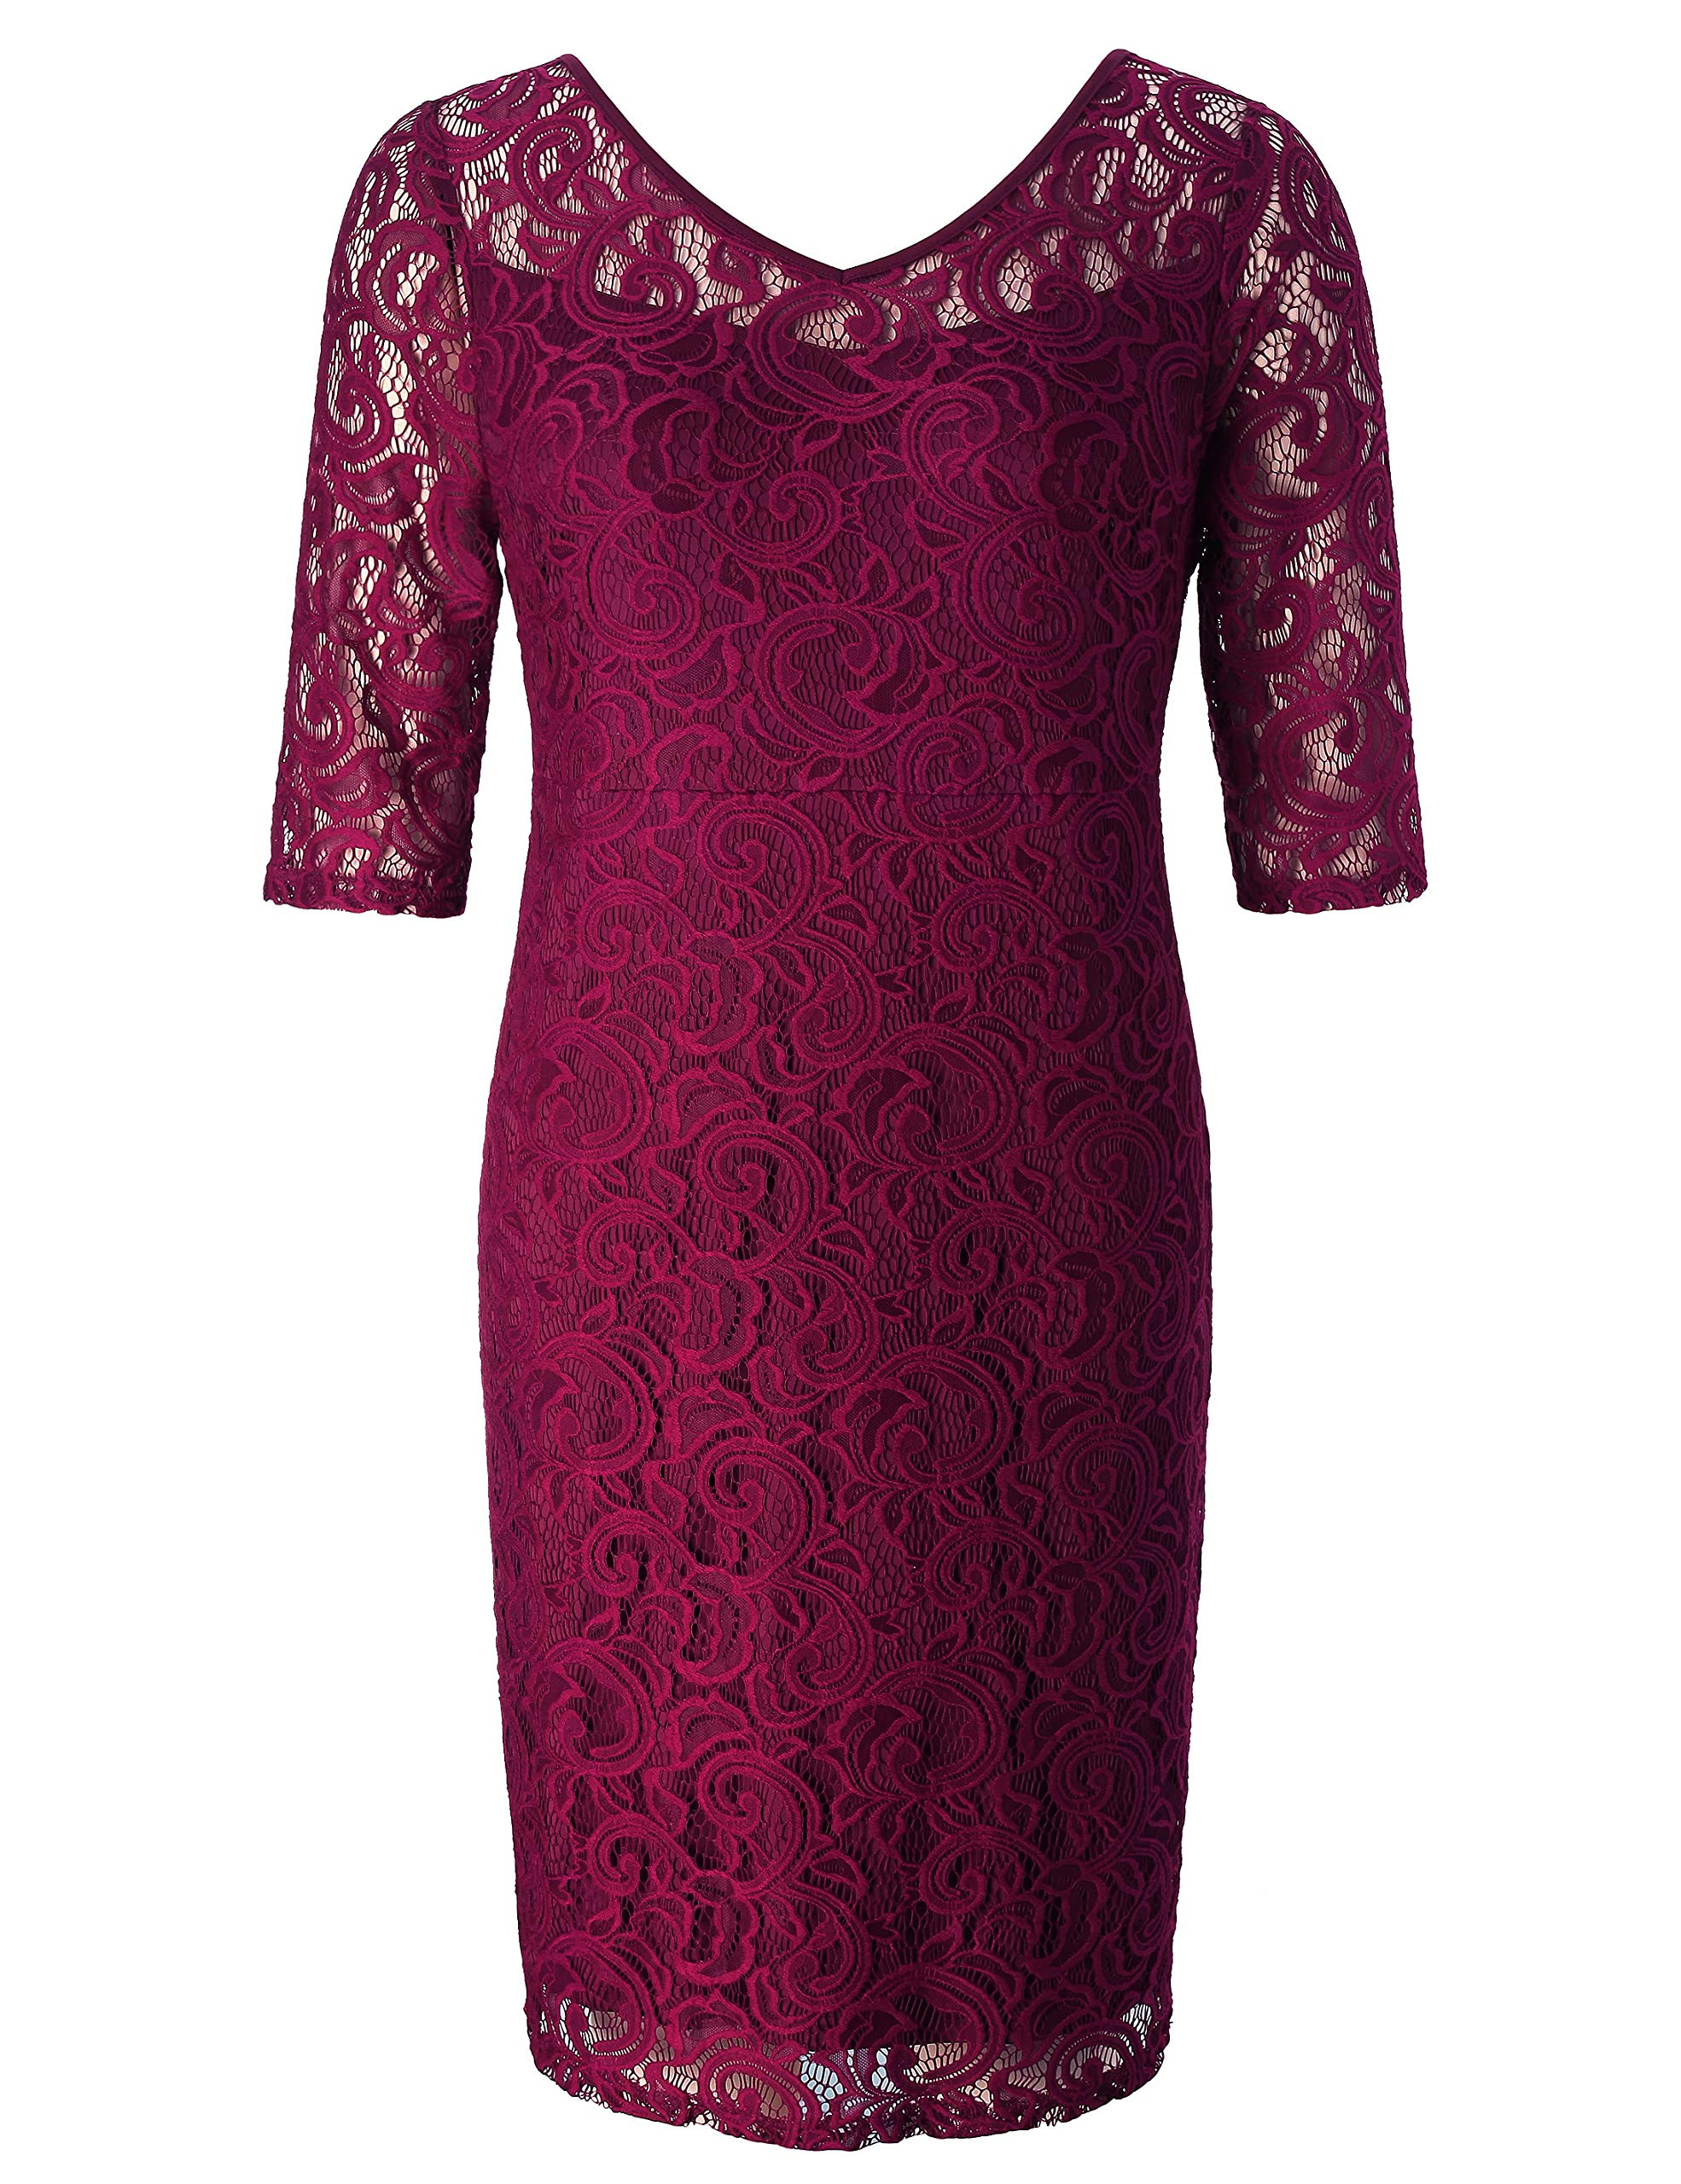 Chicwe Women's Plus Size Stretch Guipure Lace Dress - Party Wedding Cocktail Dress Wine Red 1X